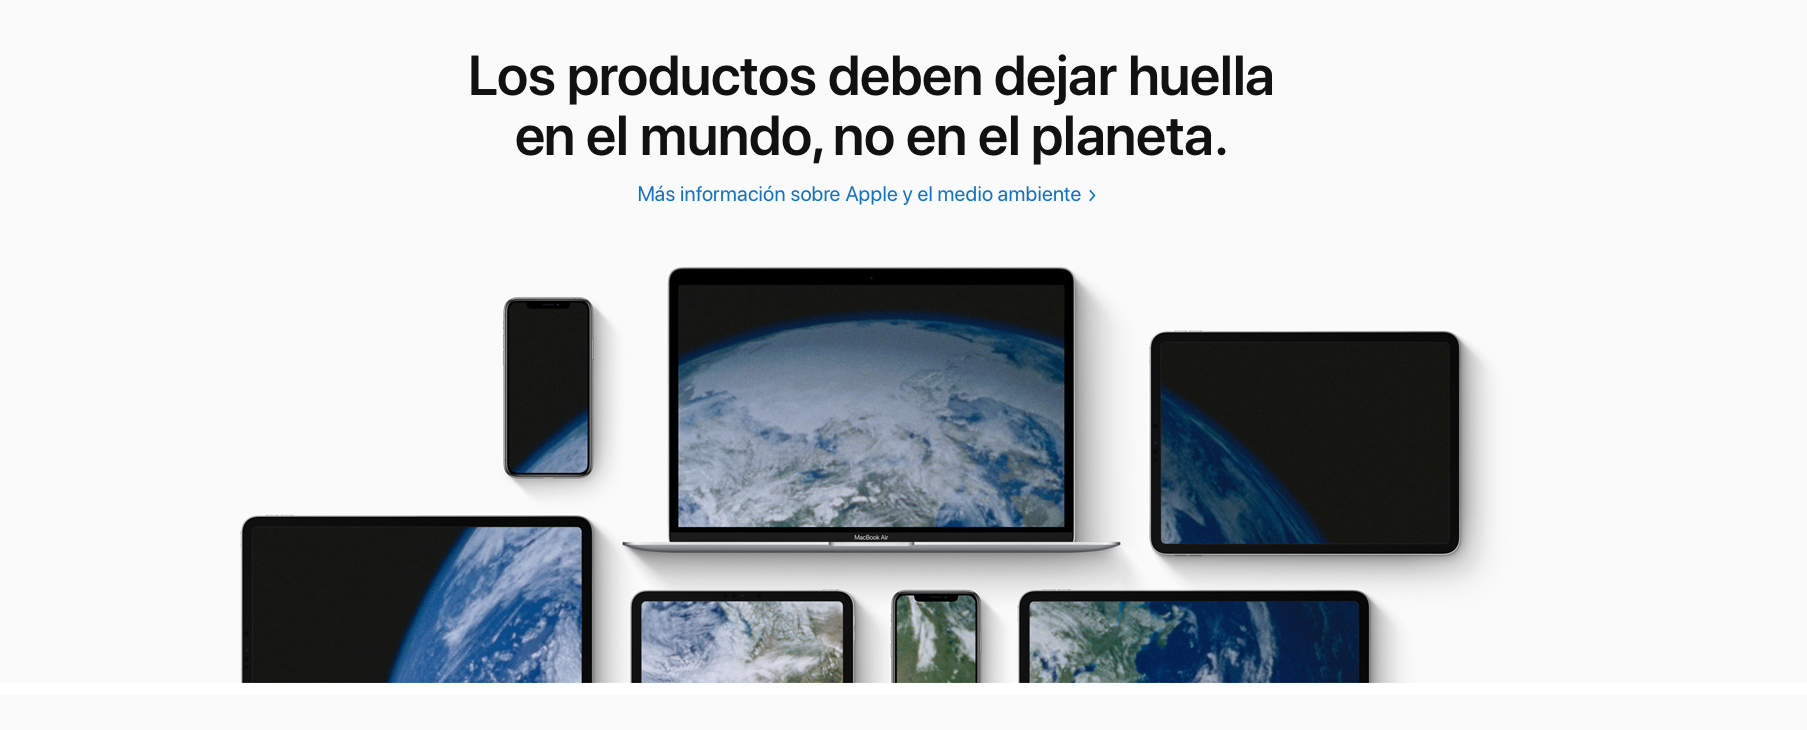 Apple día de la tierra